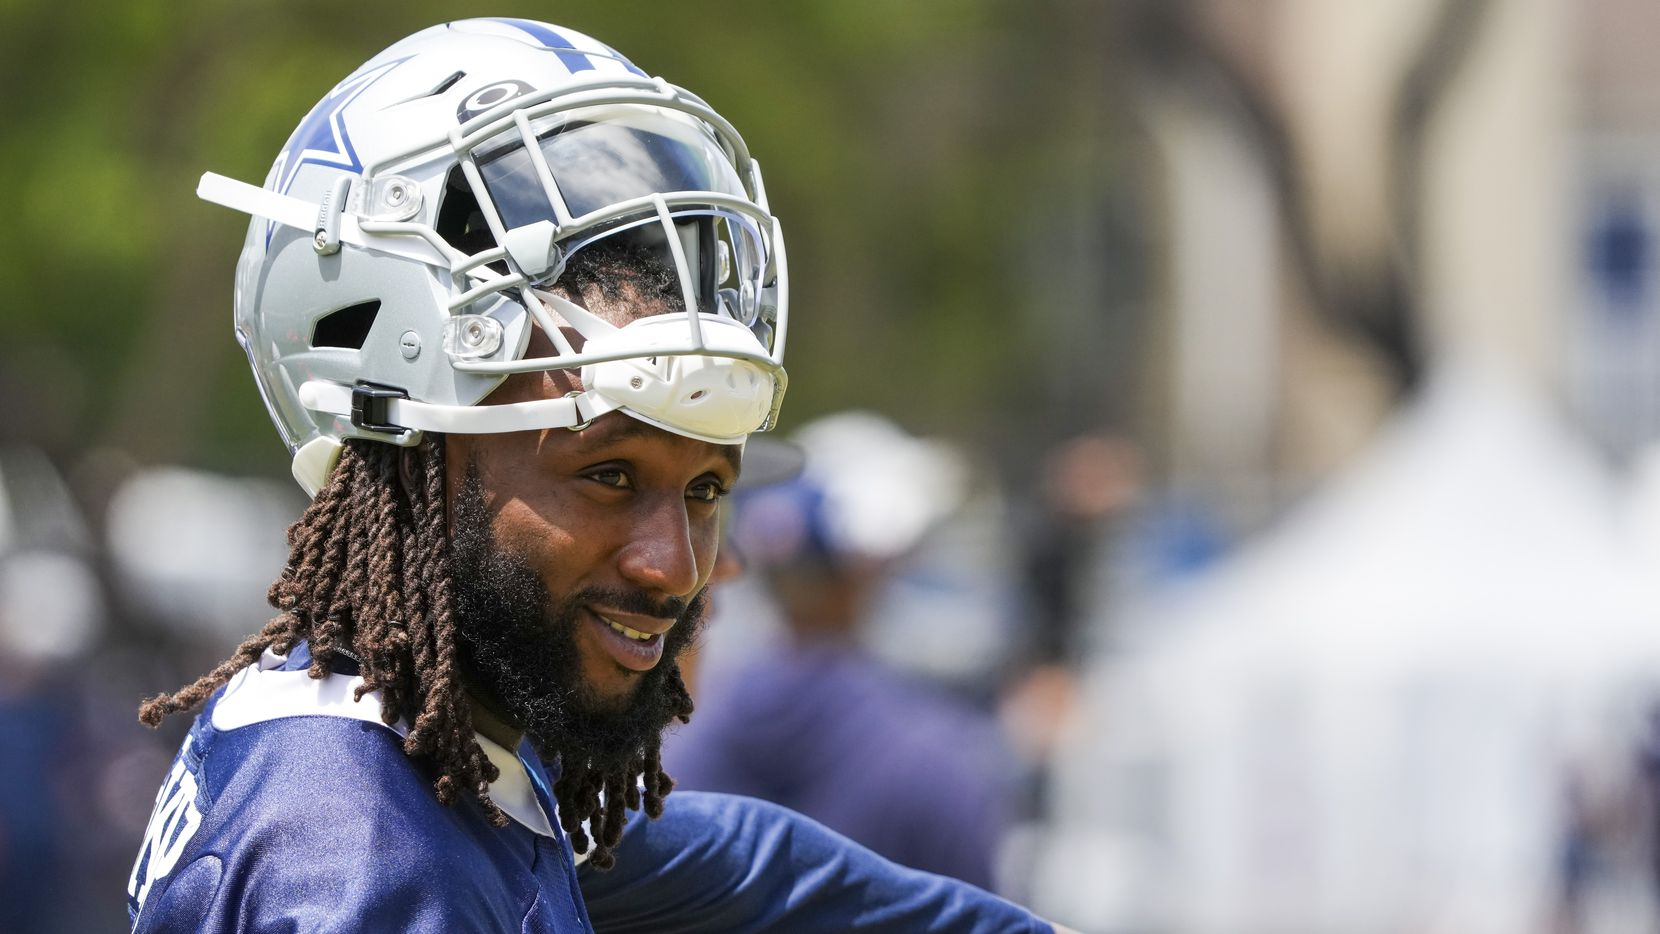 Dallas Cowboys safety Malik Hooker (28) motions from the sideline during a practice at training camp on Wednesday, July 28, 2021, in Oxnard, Calif.